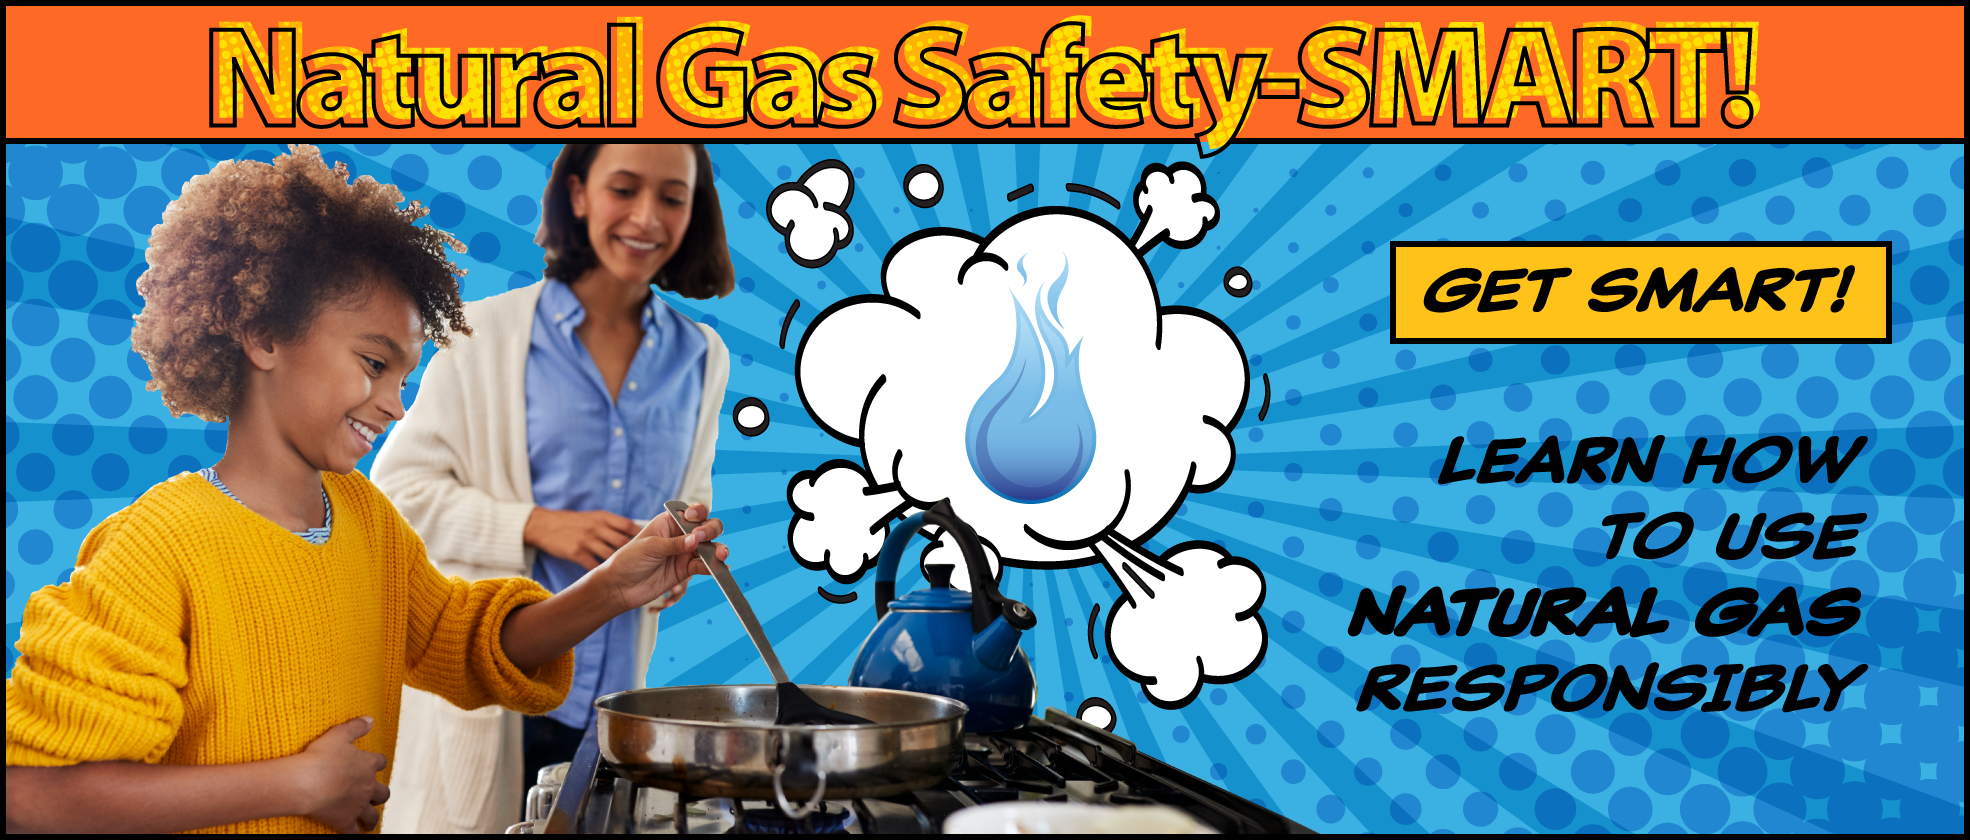 Natural Gas Safety-SMART: Get SMART! Learn how to use natural gas responsibly